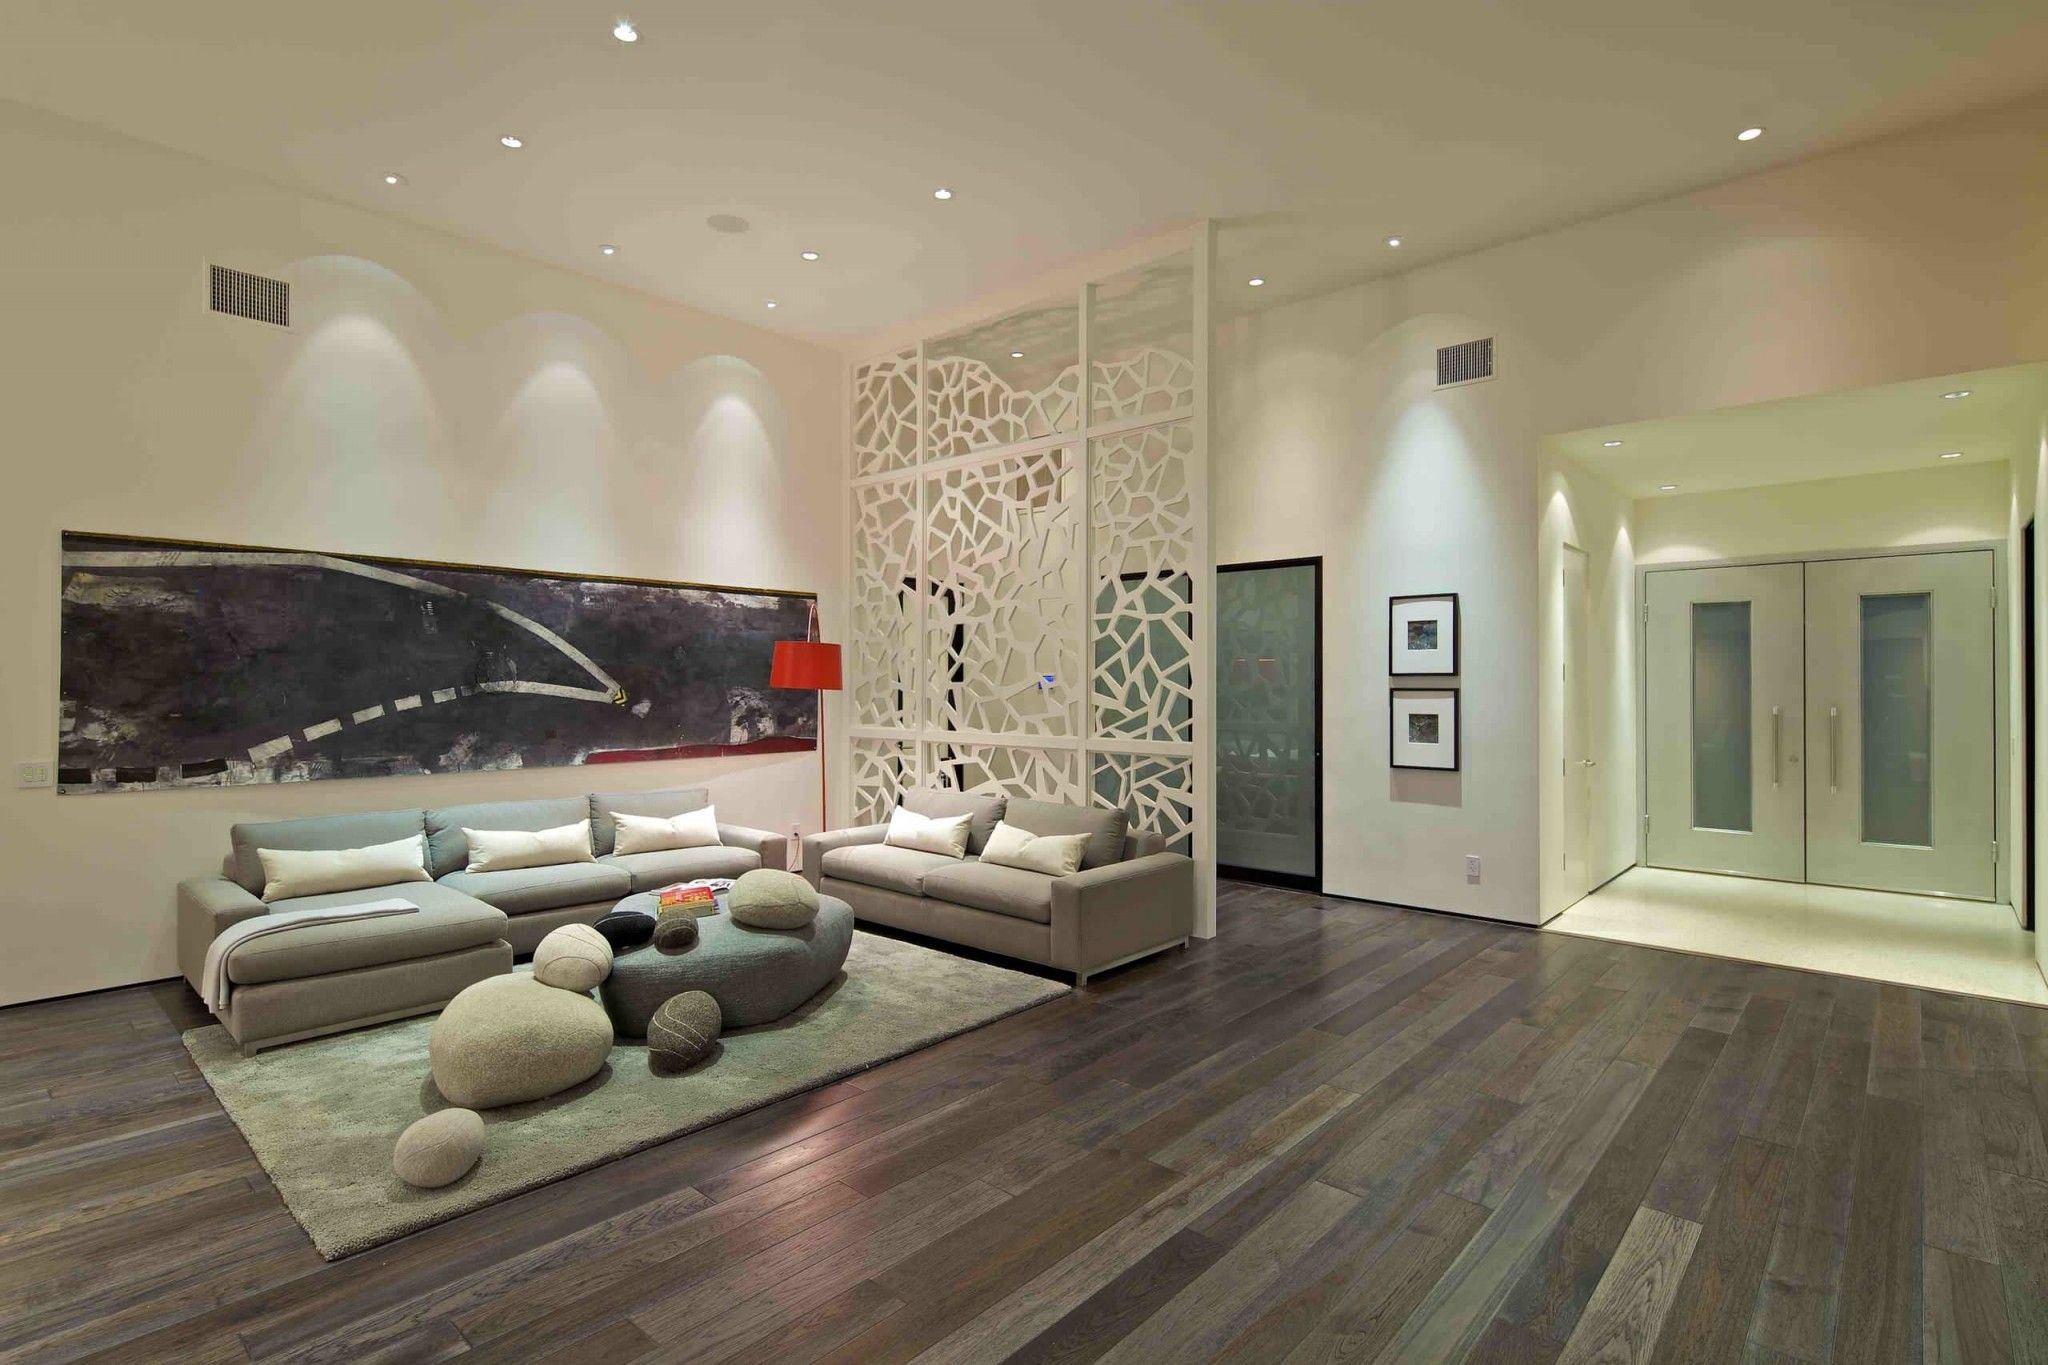 Elegant Partitions for Rooms From Floor to Ceiling